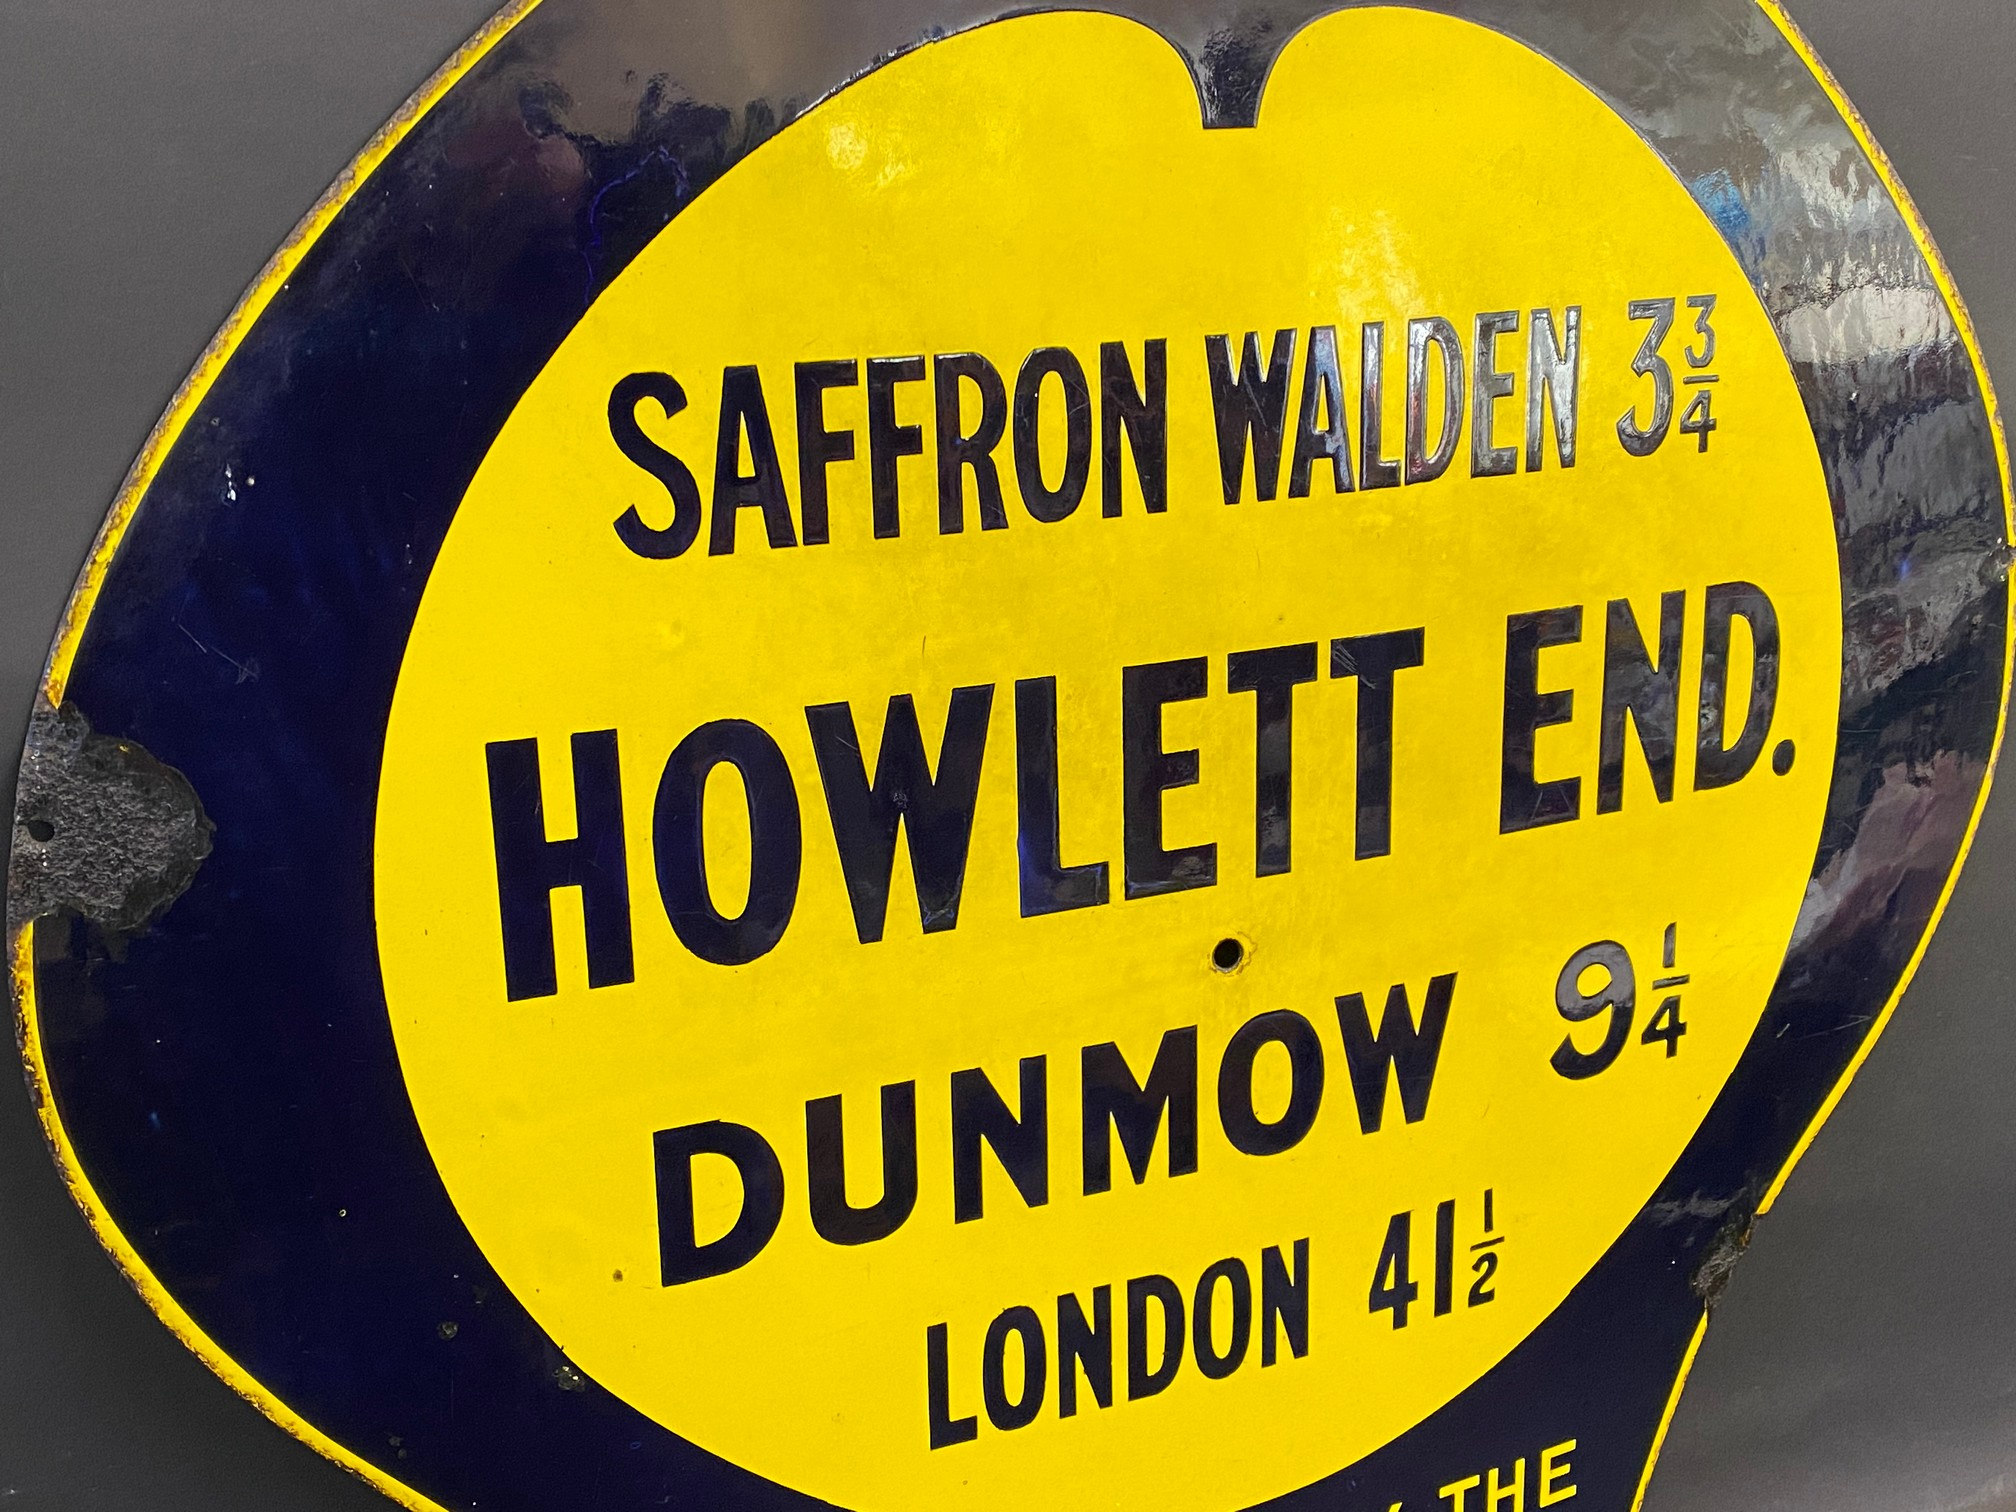 An early AA and Motor Union enamel location sign for Howlett End, Saffron Waldon 3 3/4 miles, the - Image 3 of 6